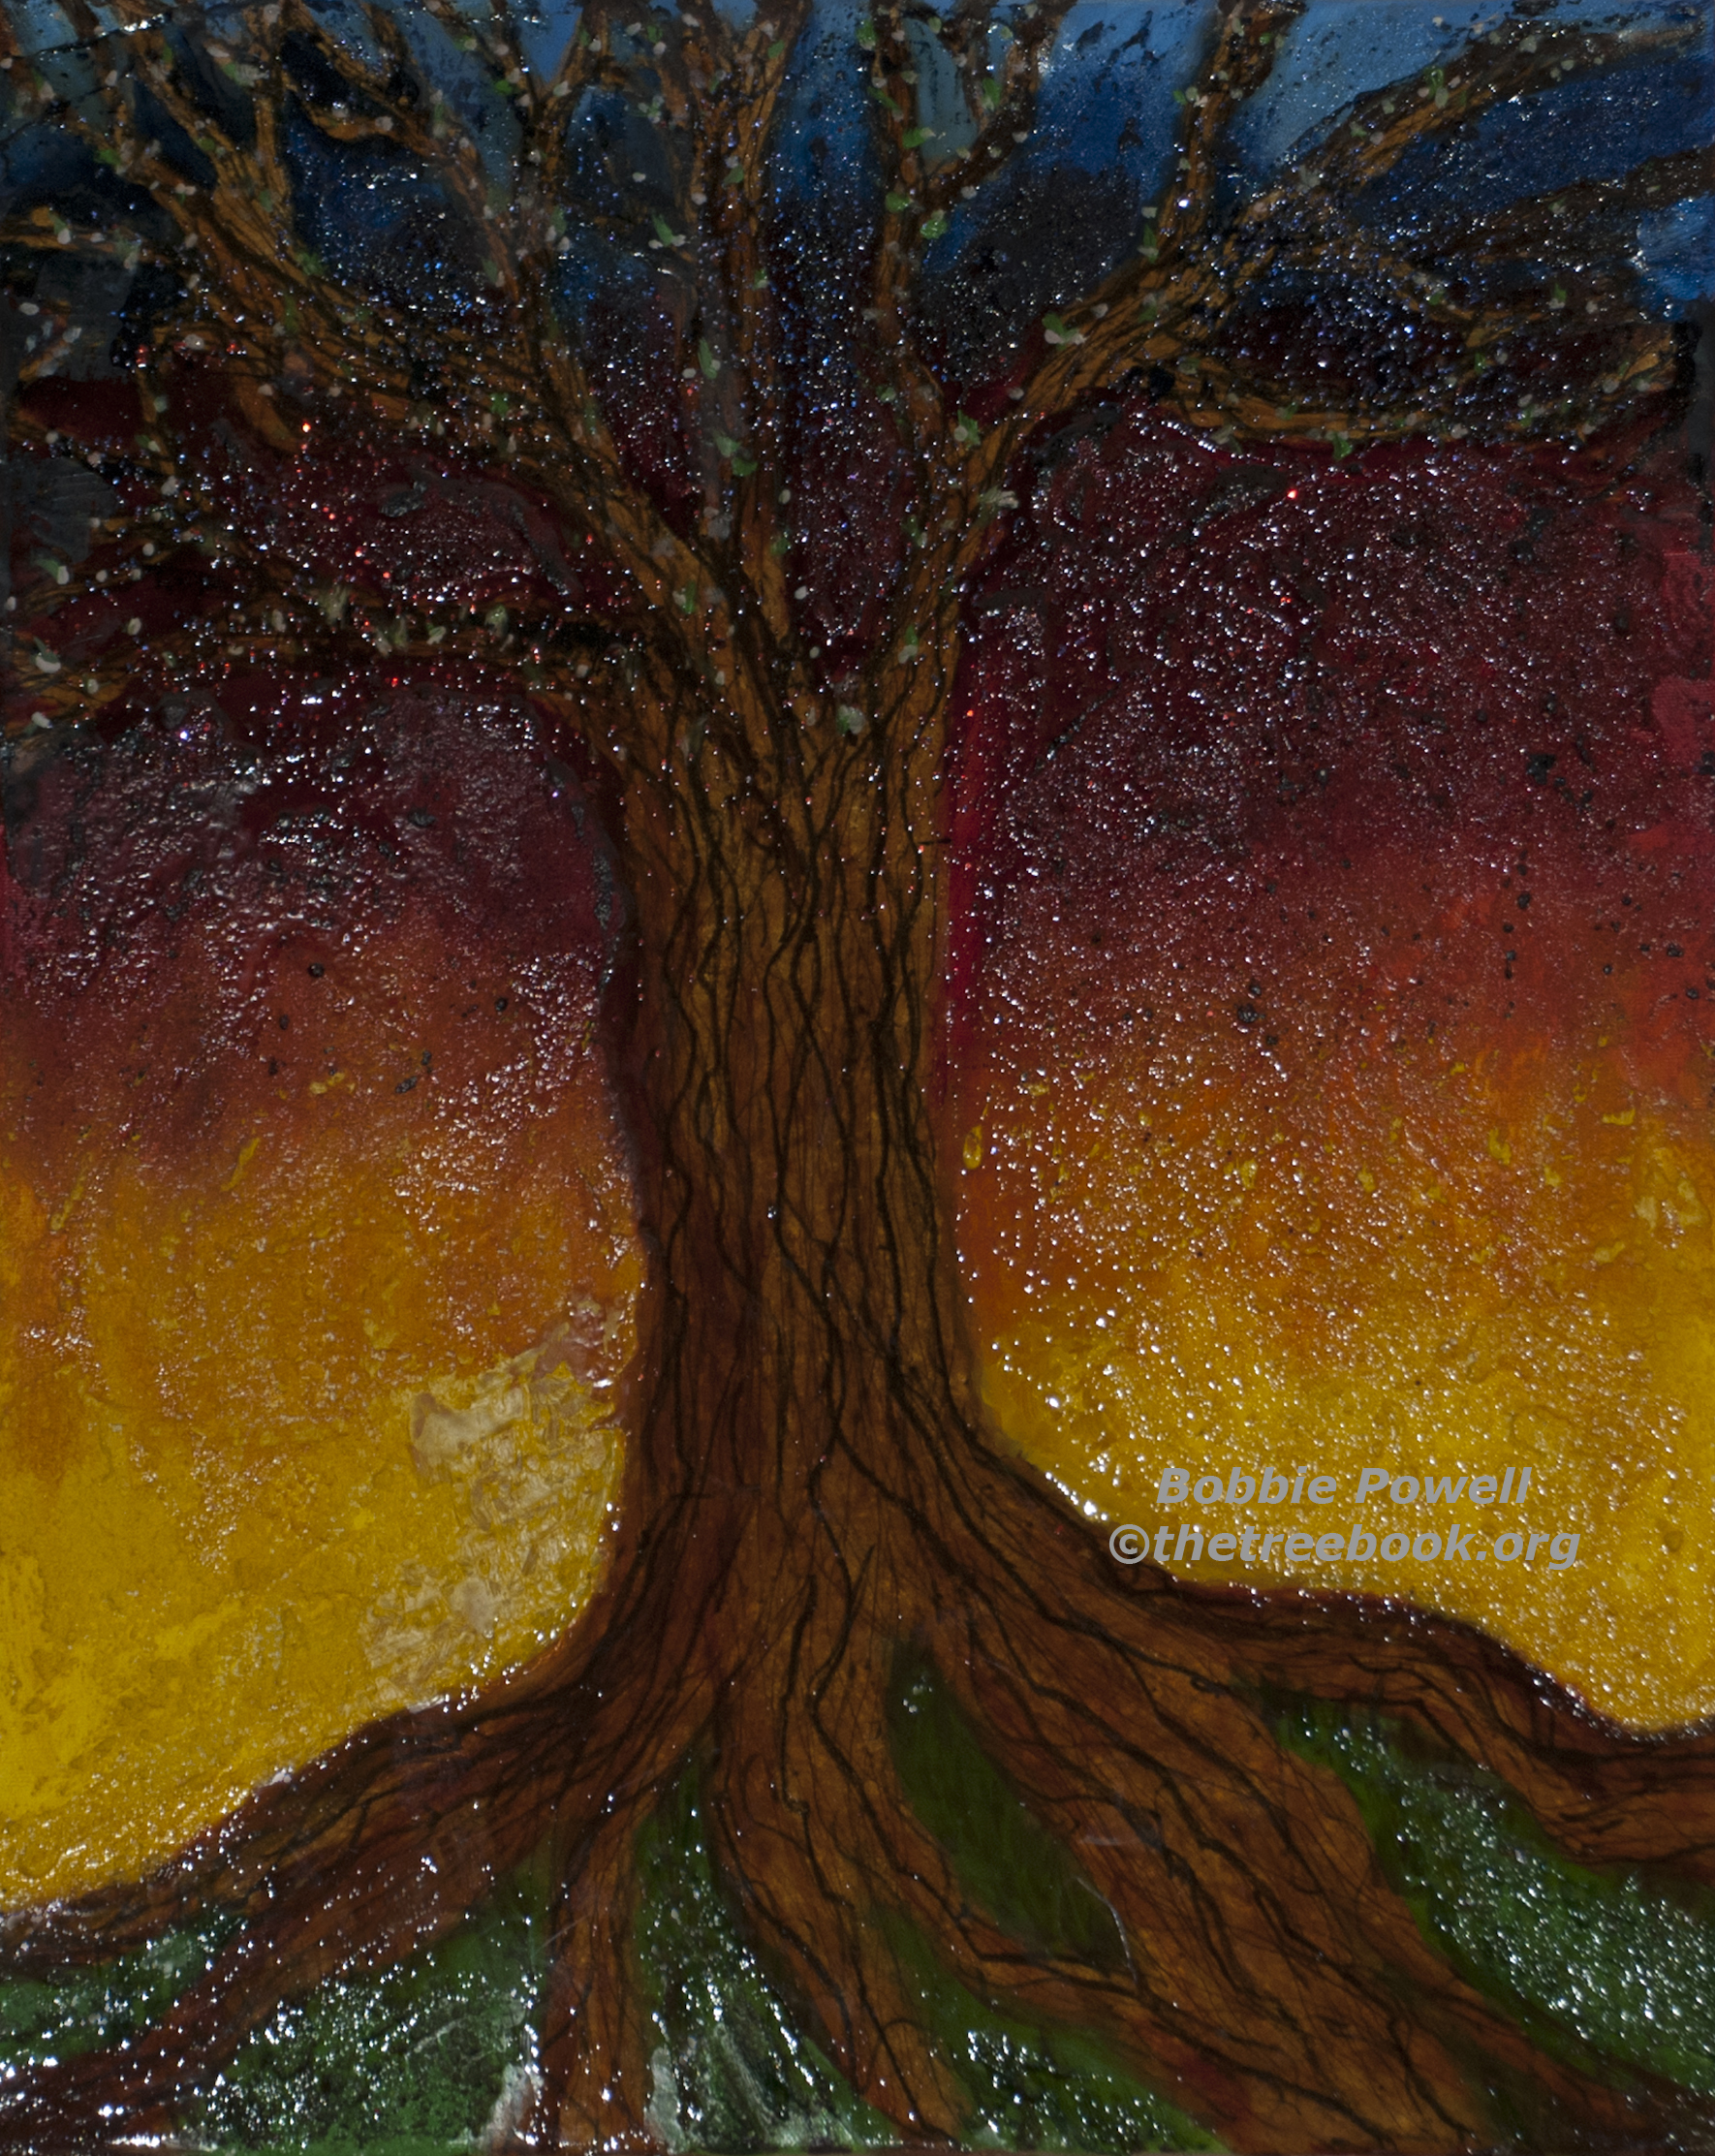 Bobbie Powell, Magic Tree, digital print, 14 x 11in. $75